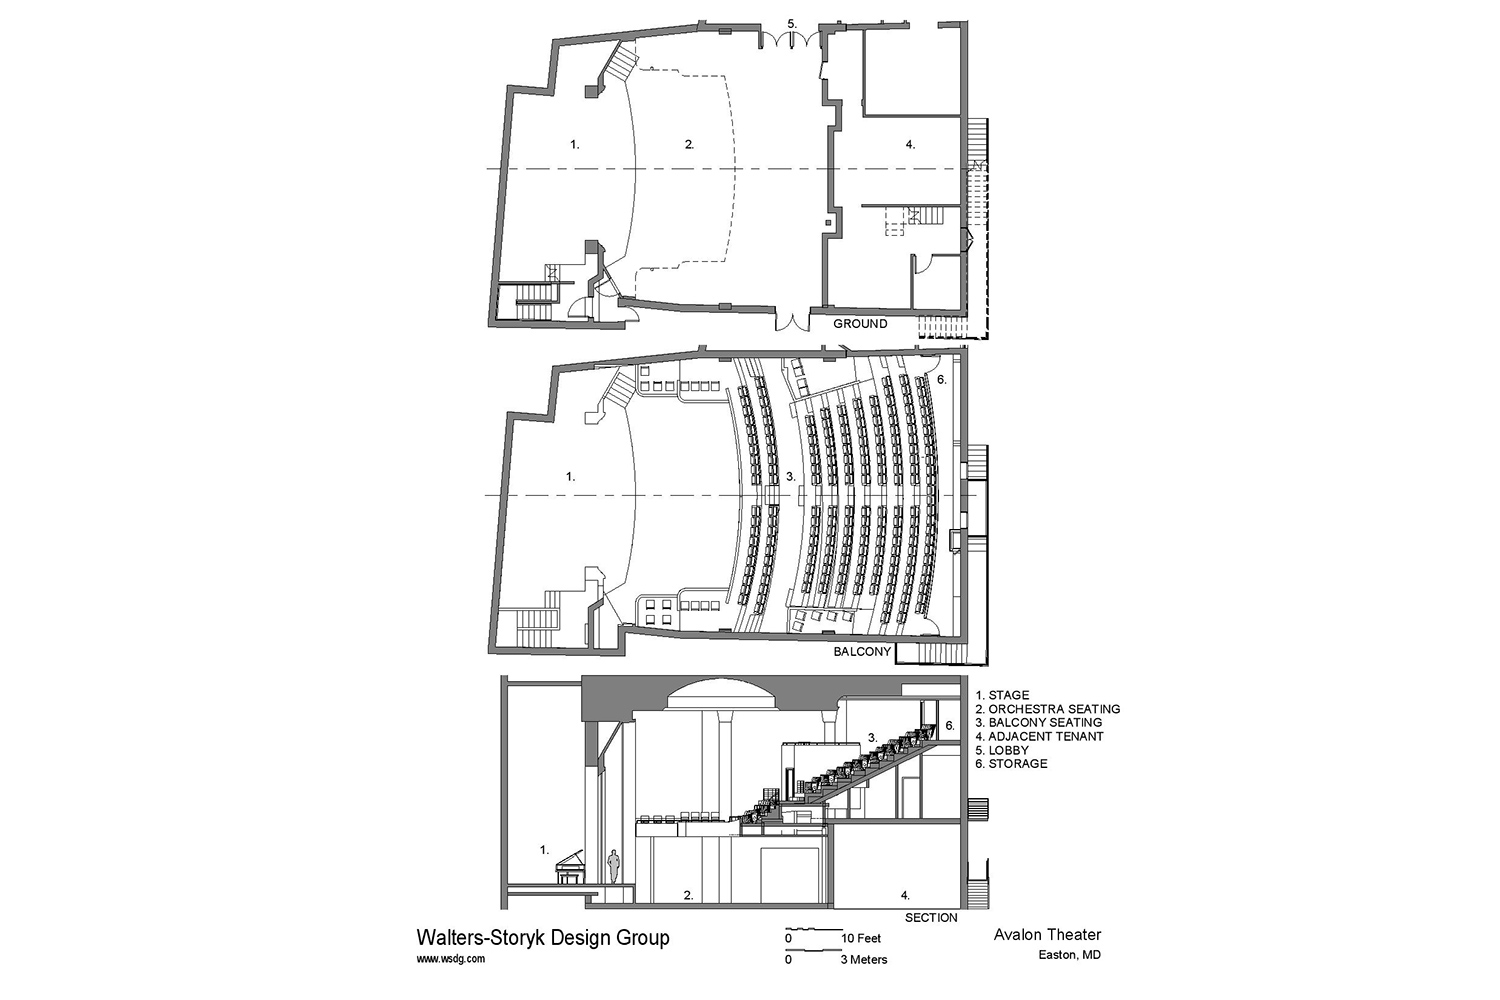 The Avalon Foundation, which runs the Avalon Theatre, secured the services of WSDG during a larger overall renovation initiative to update the theater's acoustics, production lighting, and audiovisual capabilities. Presentation drawing 2.